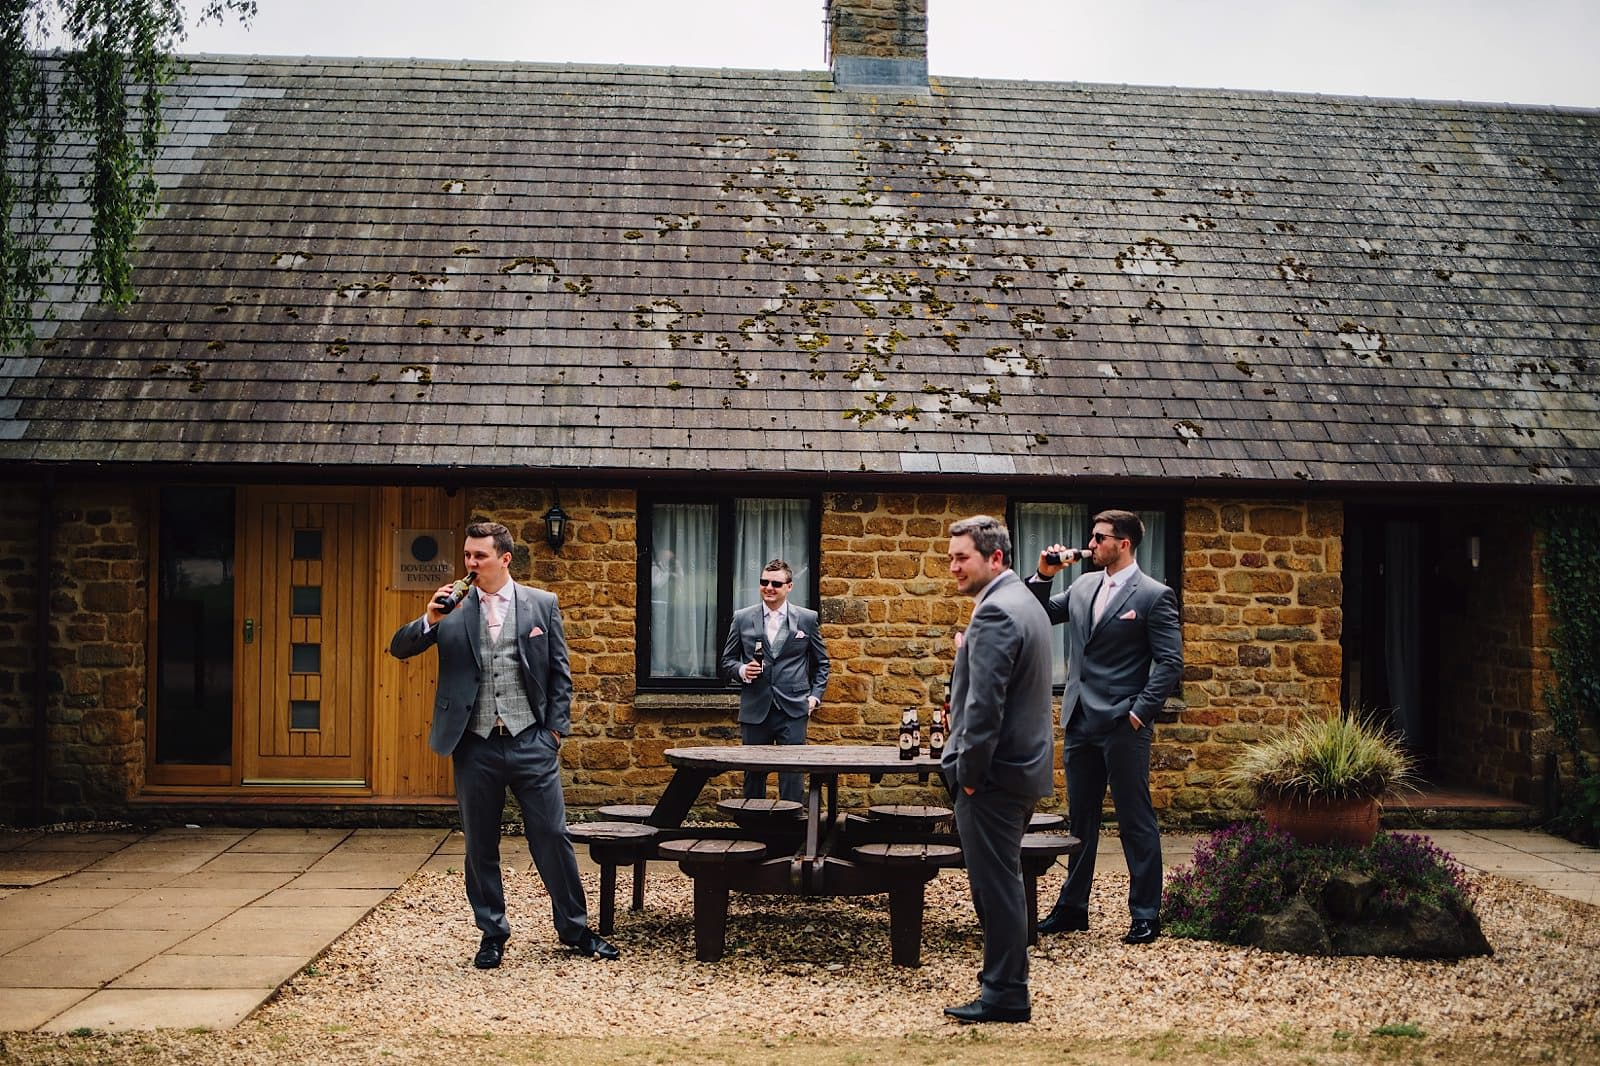 Dovecote barn adderbury wedding photography 032